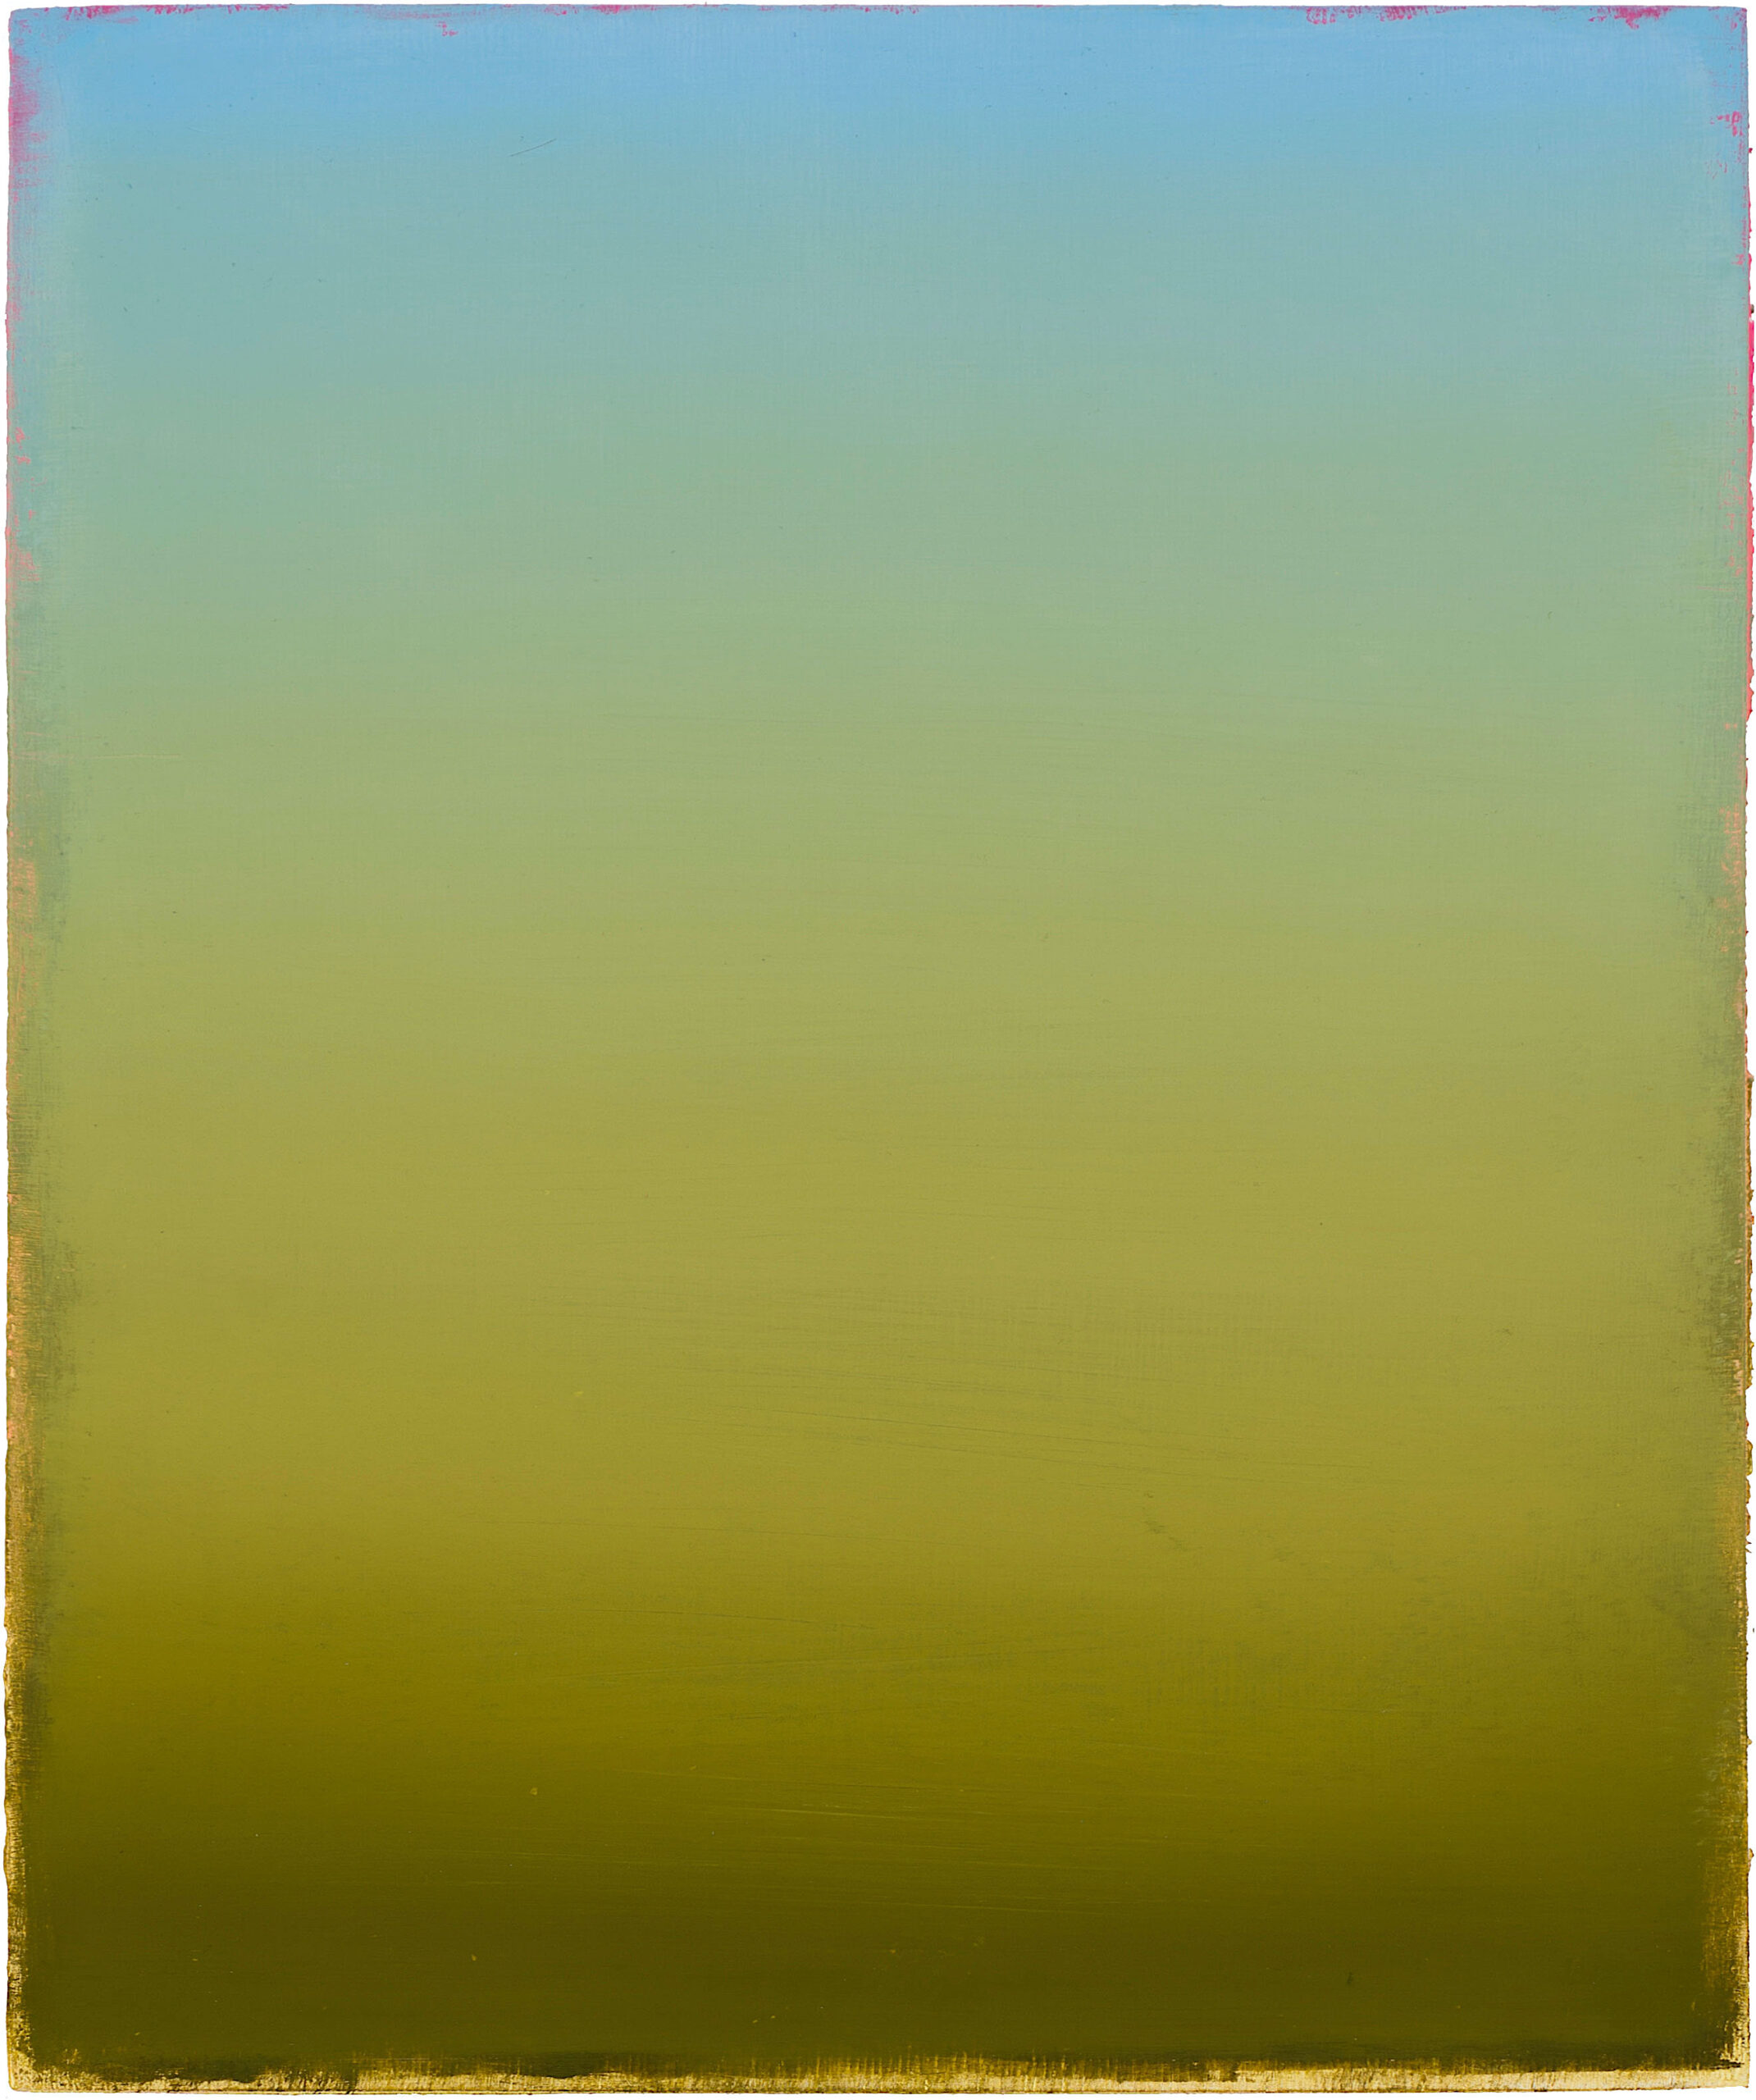 Gradation SkyBlue 2. Neil Callander. Jackson's Painting Prize.